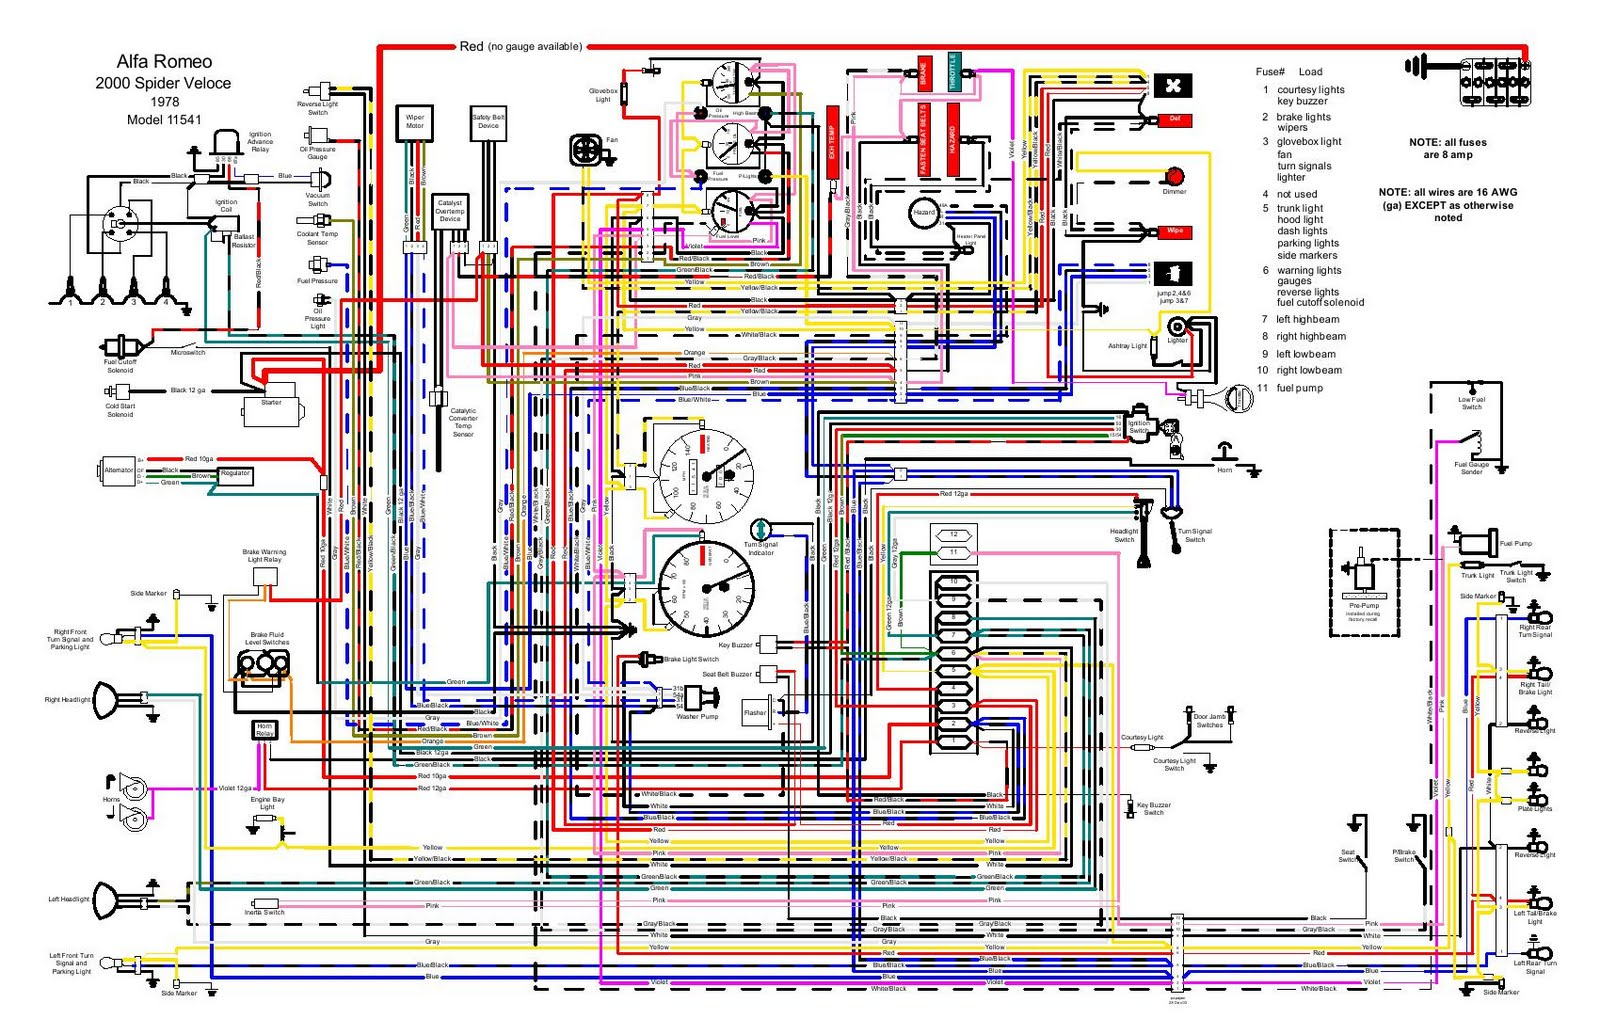 wiring diagram for 1978 alfa romeo spider CHaEWjz wiring diagrams cars readingrat net wiring schematics for cars at fashall.co